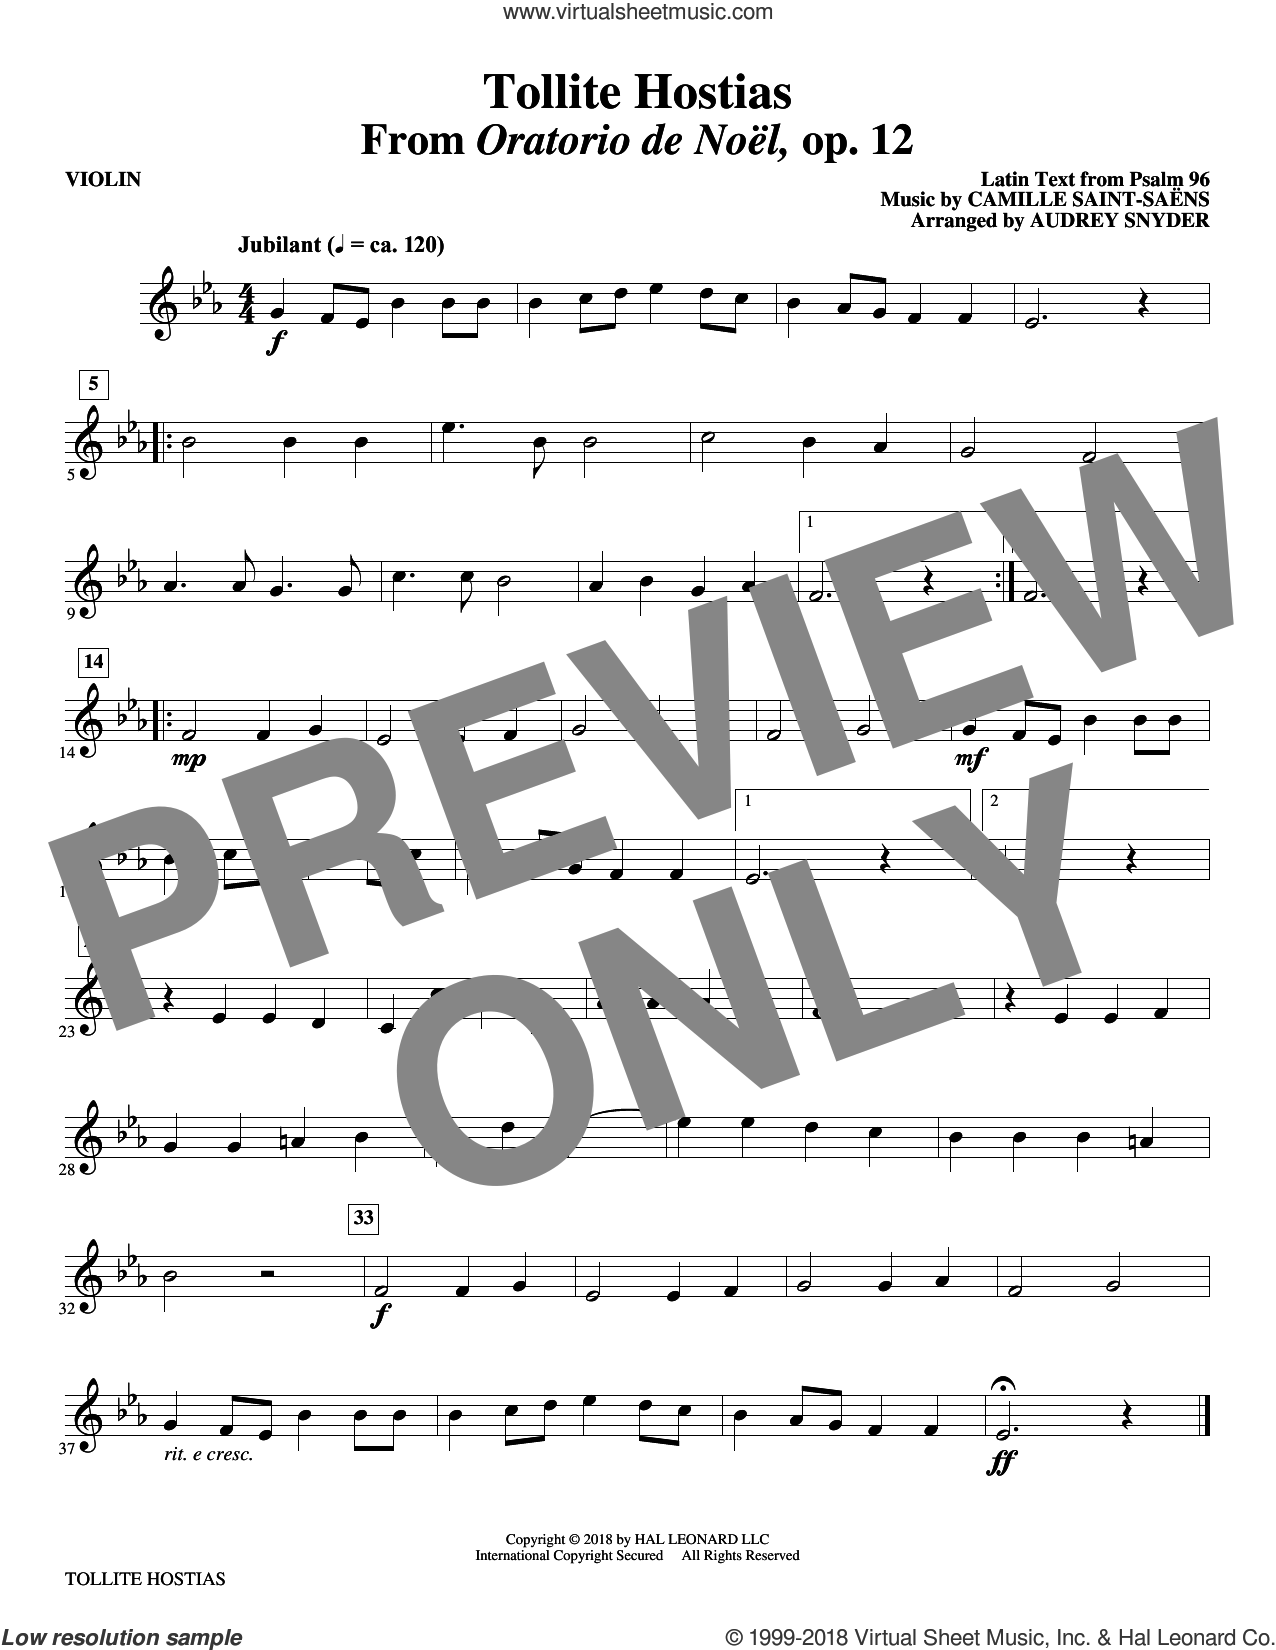 Tollite Hostias (arr. Audrey Snyder) (complete set of parts) sheet music for orchestra/band (Strings) by Audrey Snyder, Camille Saint-Saens and Psalm 96, intermediate skill level